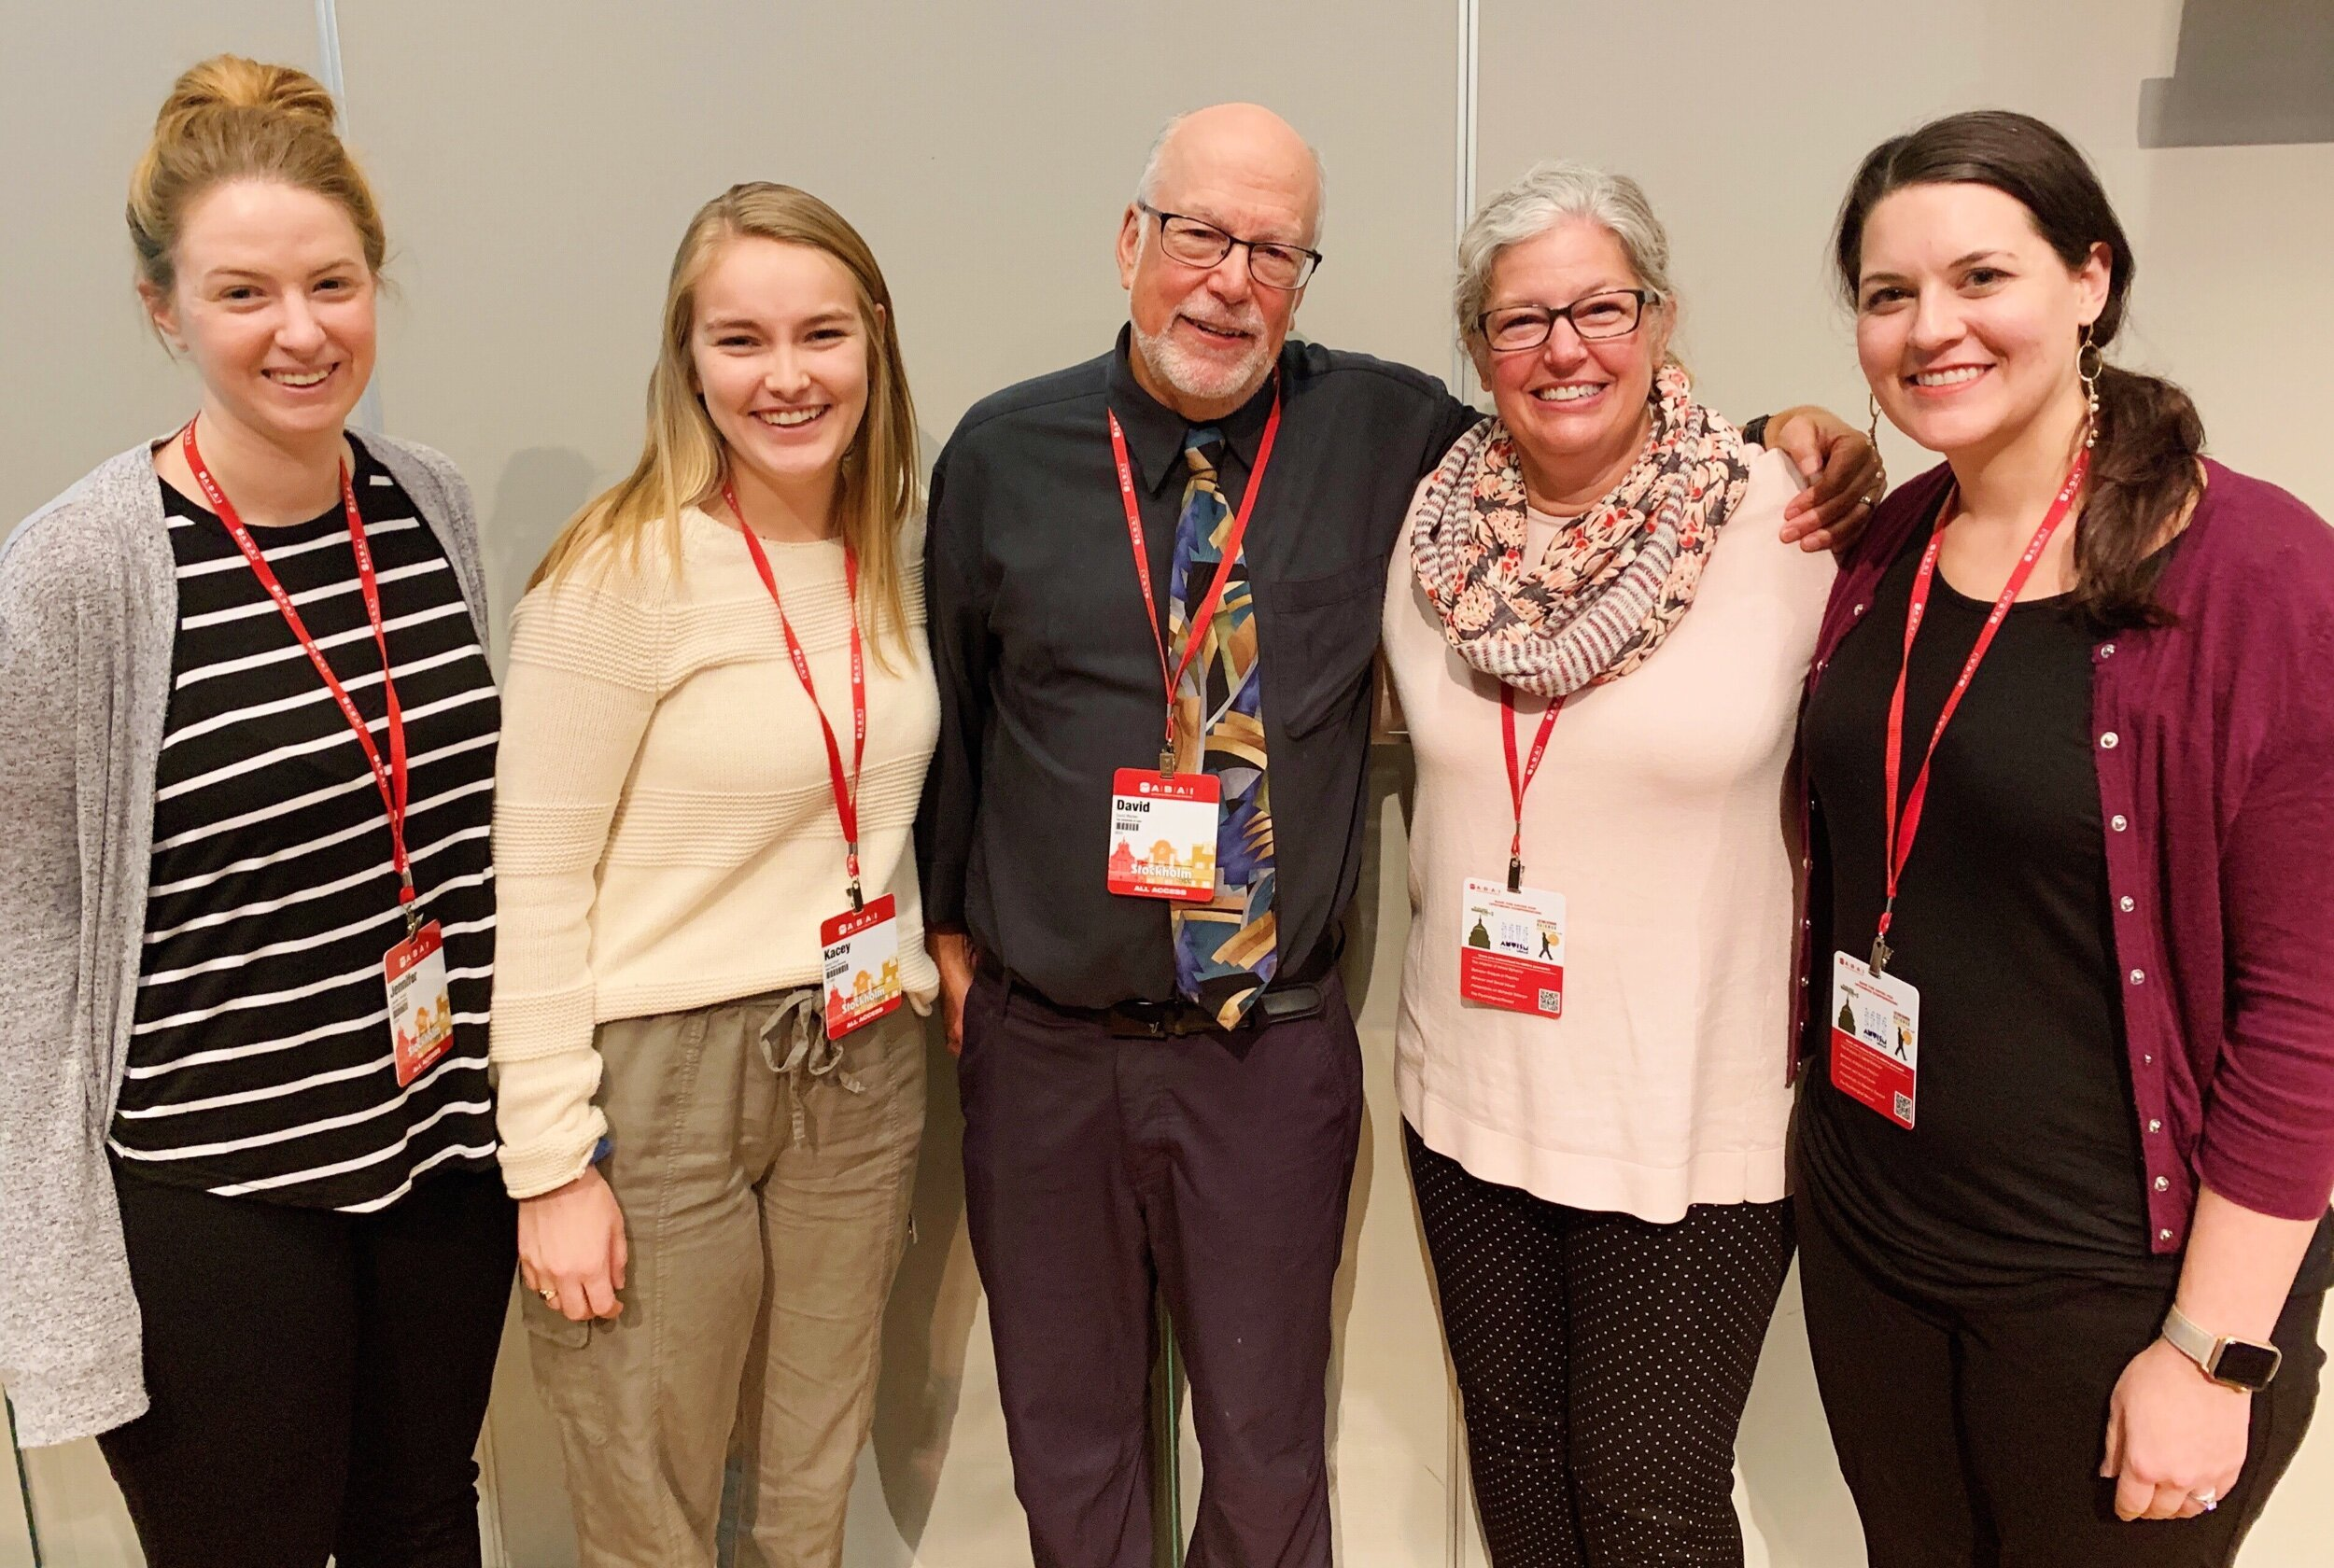 At the conference, we were able to unite 4 generations of the academic family tree. (From left to right: Jenni Owsiany, Kacey Finch, Dave Wacker, Stephanie Peterson, Katie Kestner)